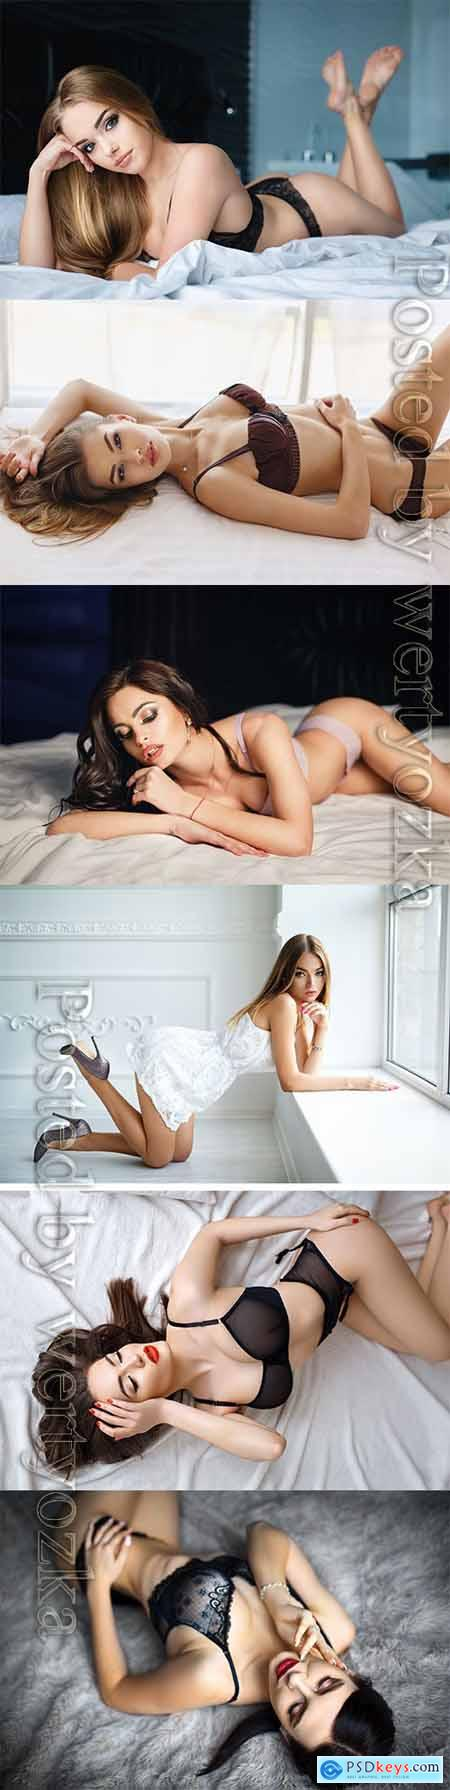 Sexy girls posing on the bed